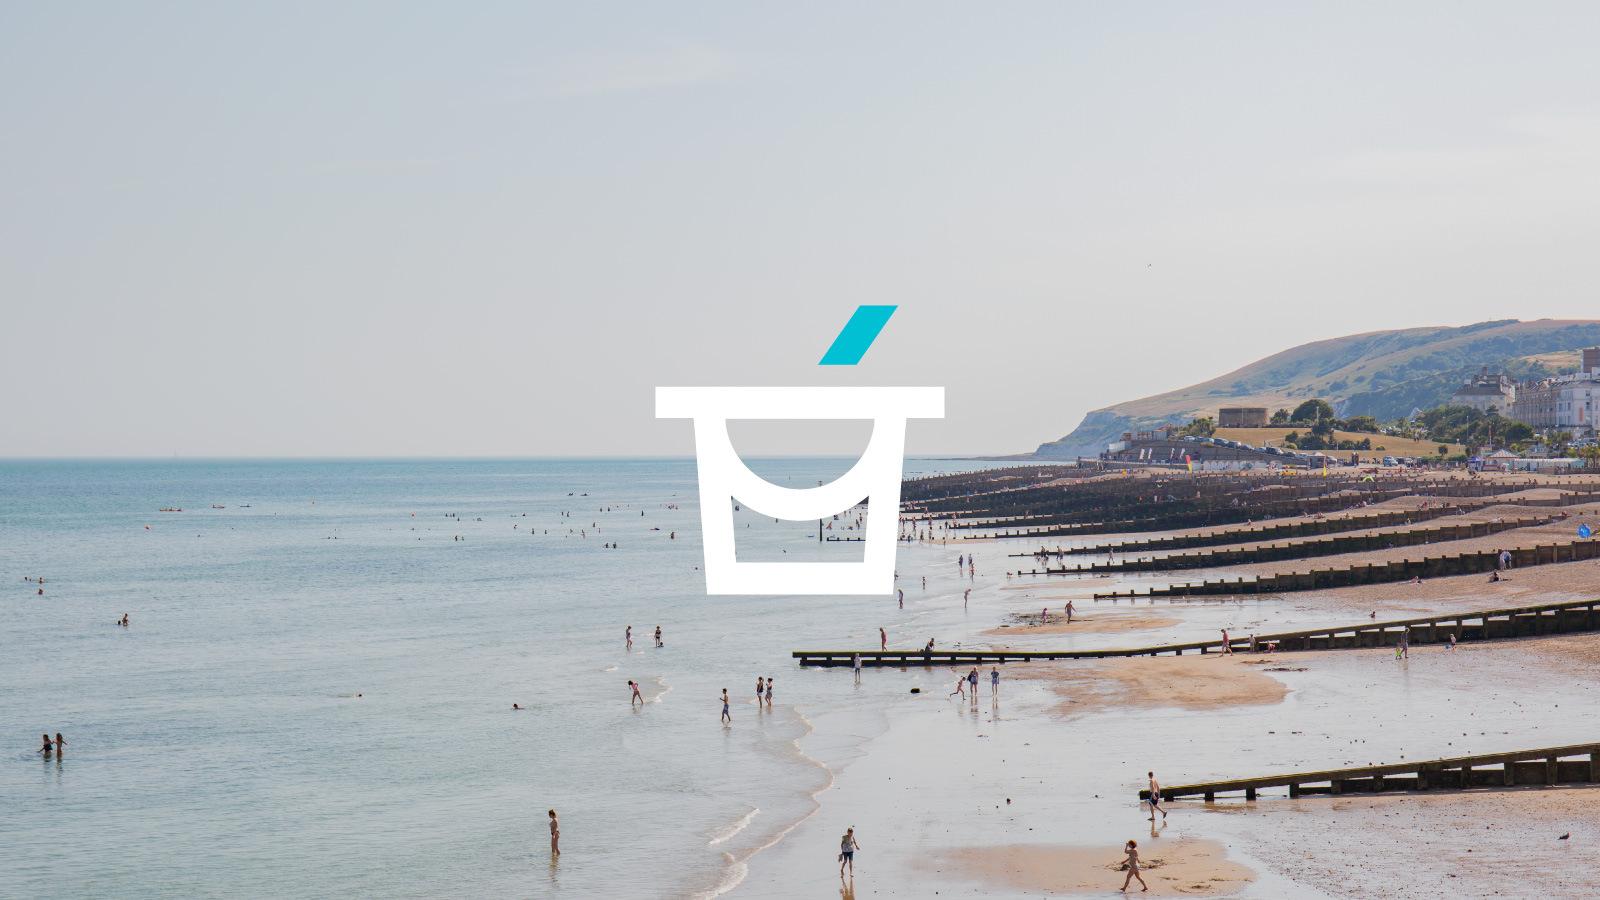 Bespoke single icon design of a bucket of an image of Eastbourne.